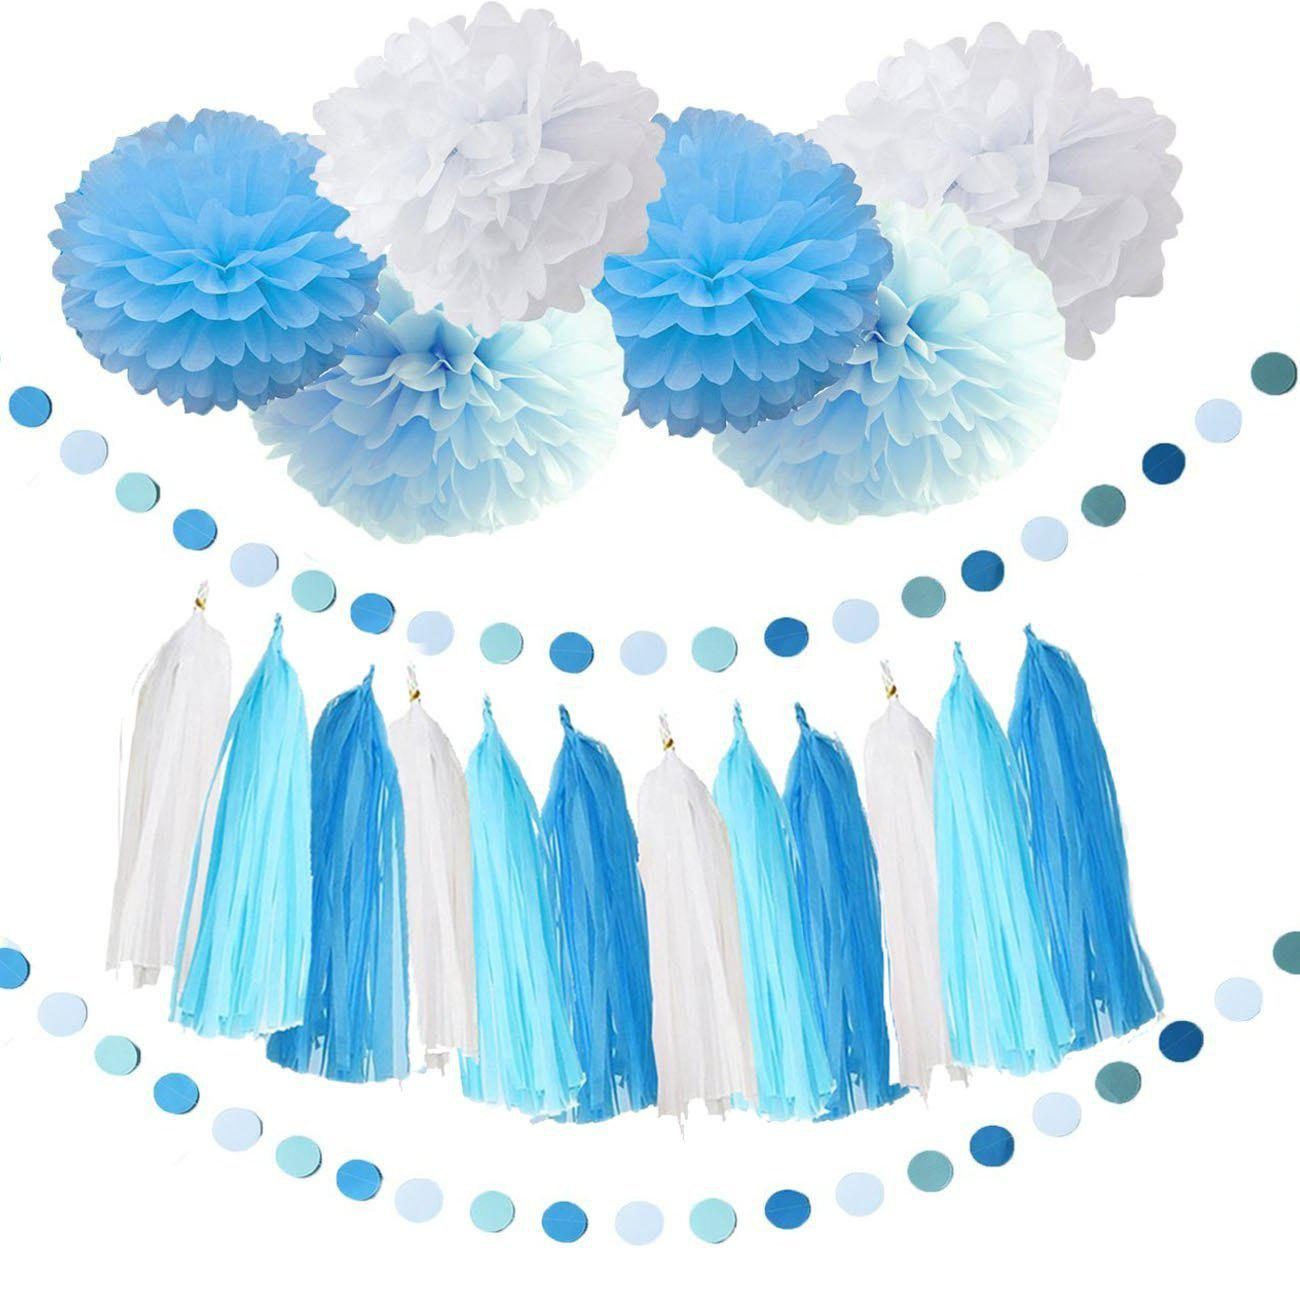 Baby Blue White Turquoise Tissue Paper Pom Poms Snow Theme Party Decor Boy Shower Birthday Decorations First